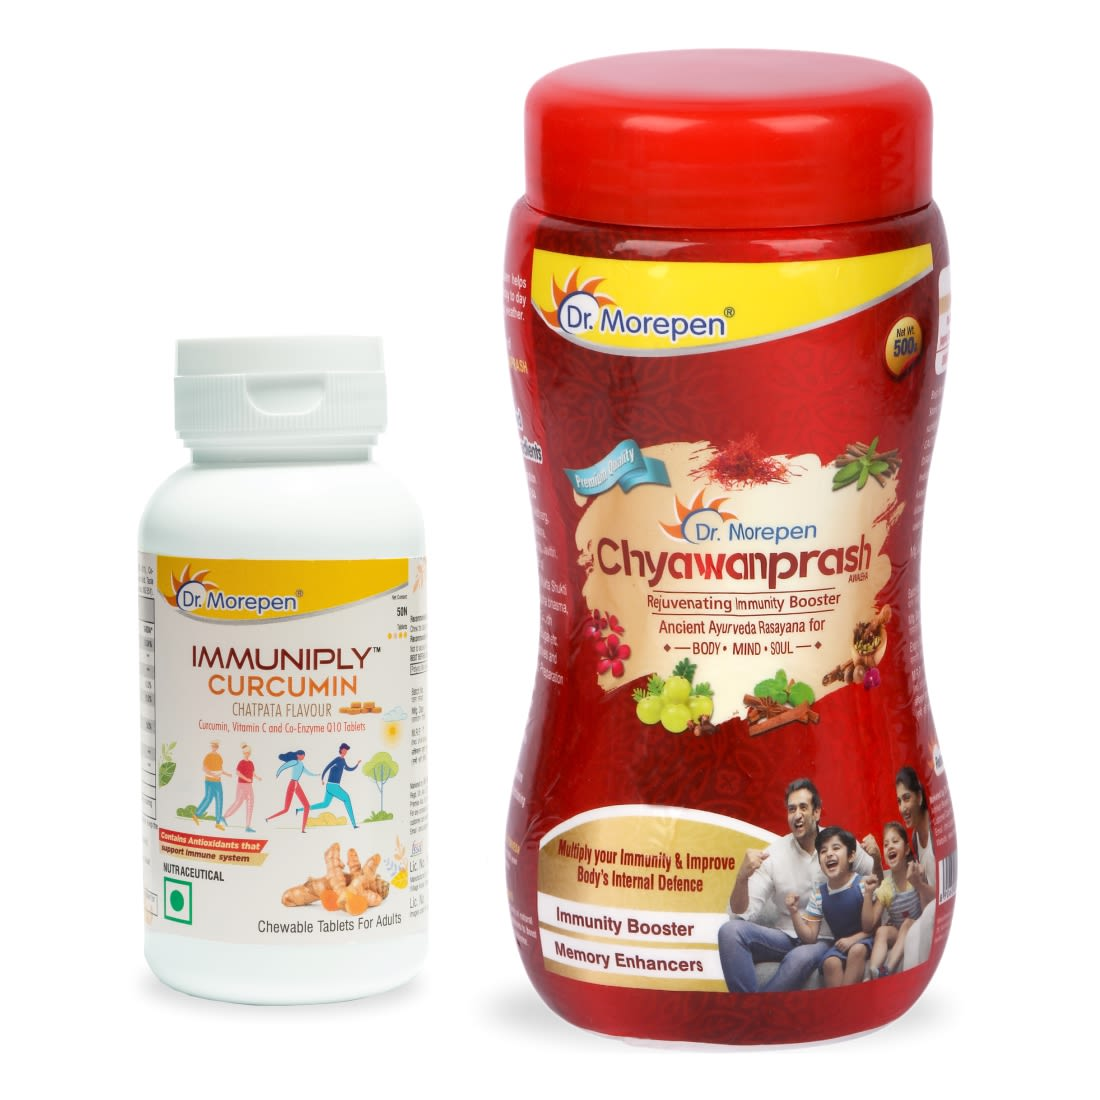 Dr. Morepen Immunity Boosters Combo-Chyawanprash 500gm & Immuniply Immunity Tablets With Curcumin & Vitamin C Supplement For Adults 50 Chewables